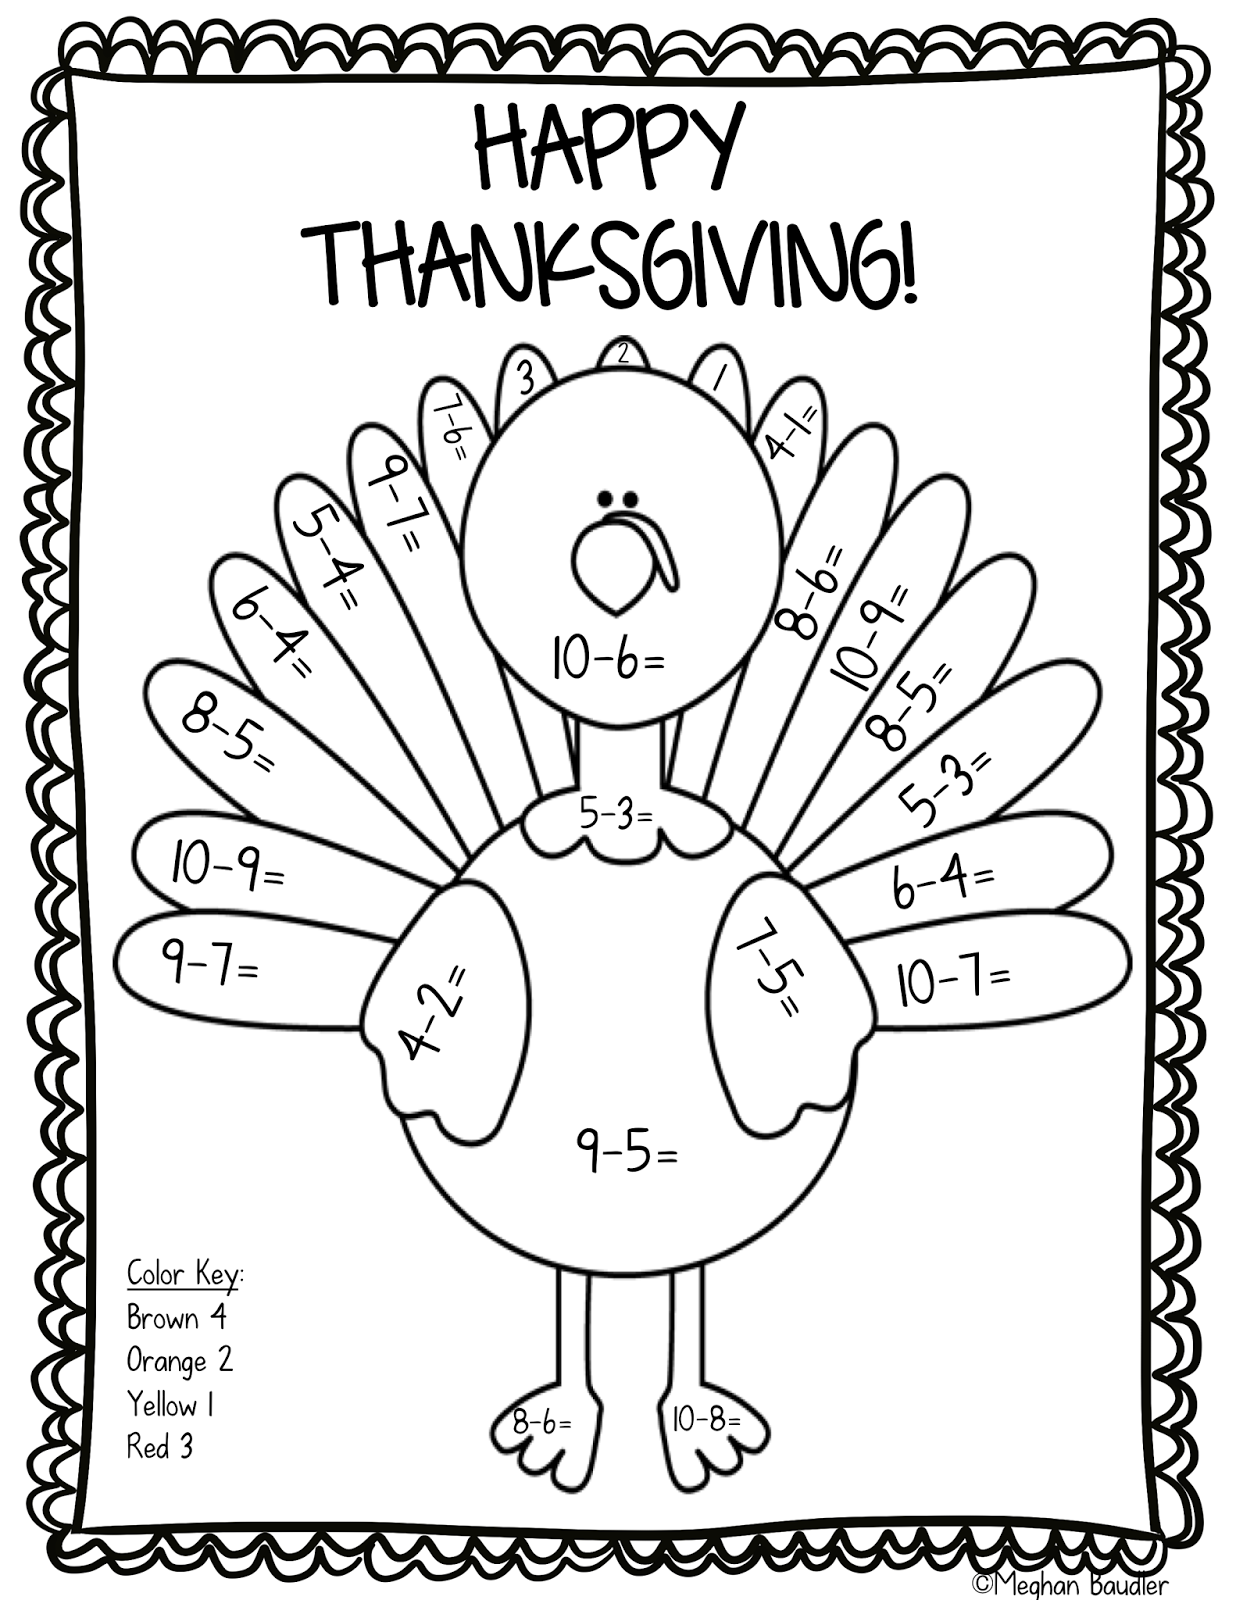 The Creative Colorful Classroom: Thanksgiving Activities